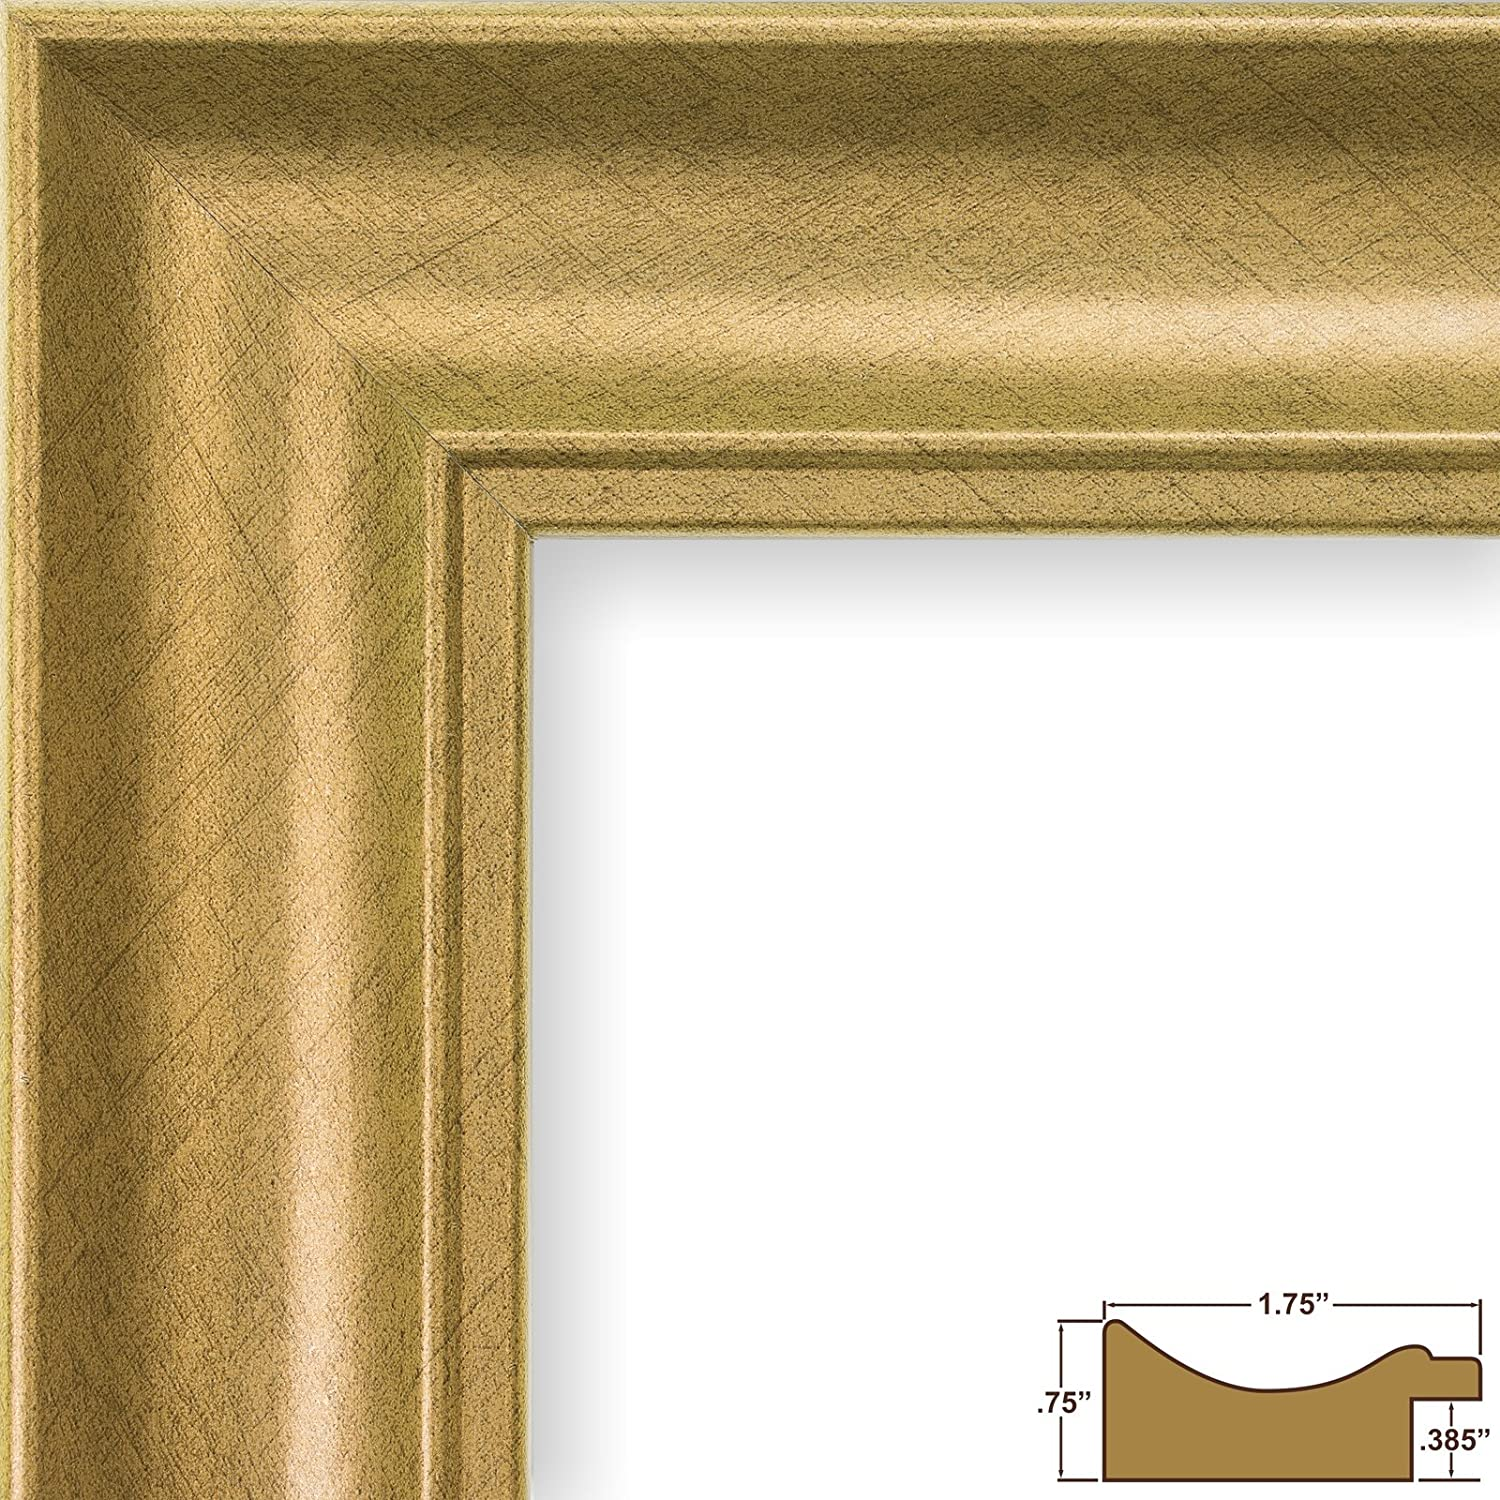 Amazon.com - Craig Frames Vintage Revival, Brushed Gold Picture ...